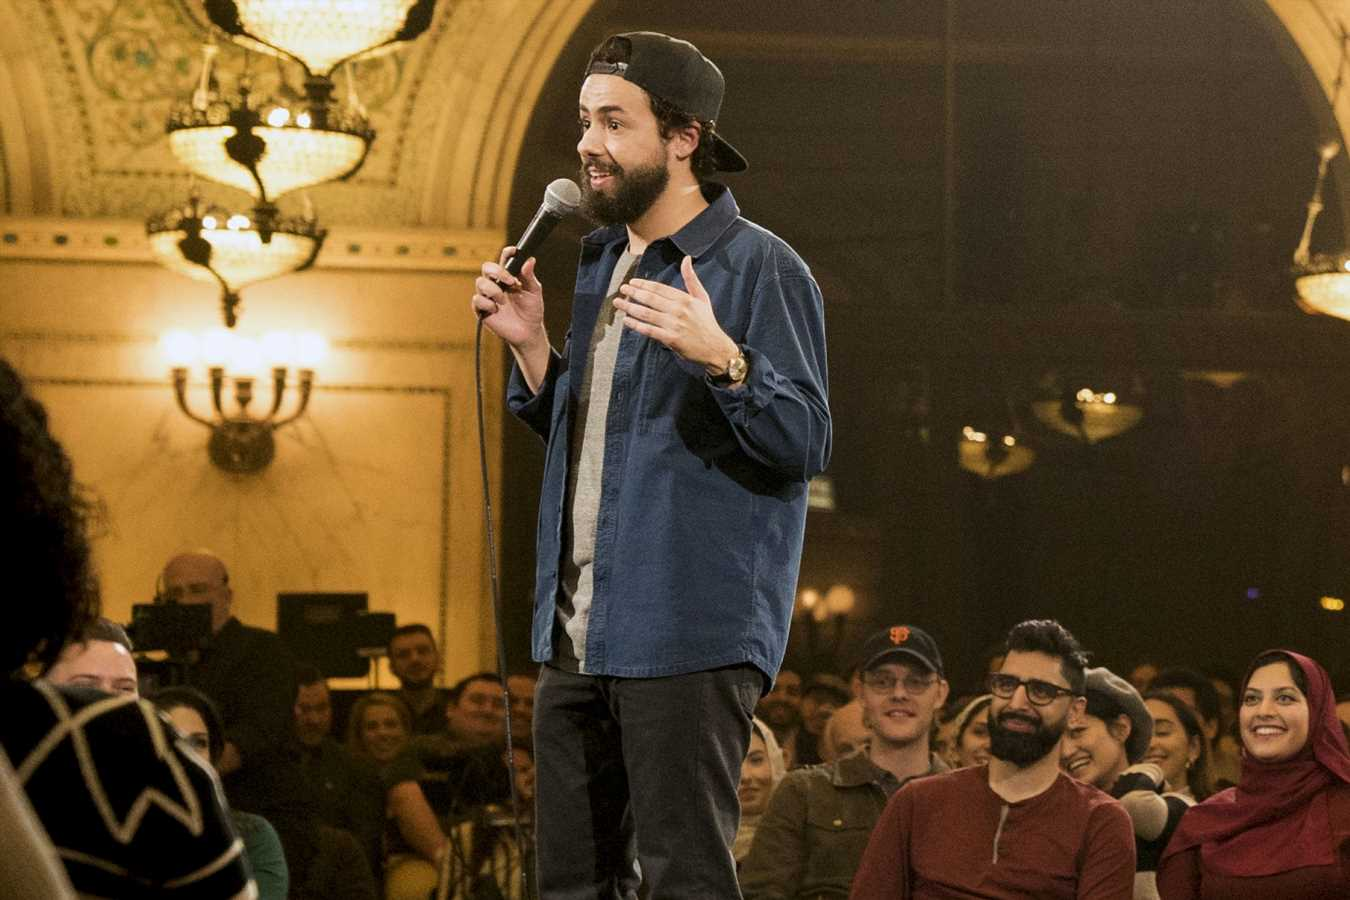 Ramy Youssef discuss Uncle Donald Trump in first comedy special